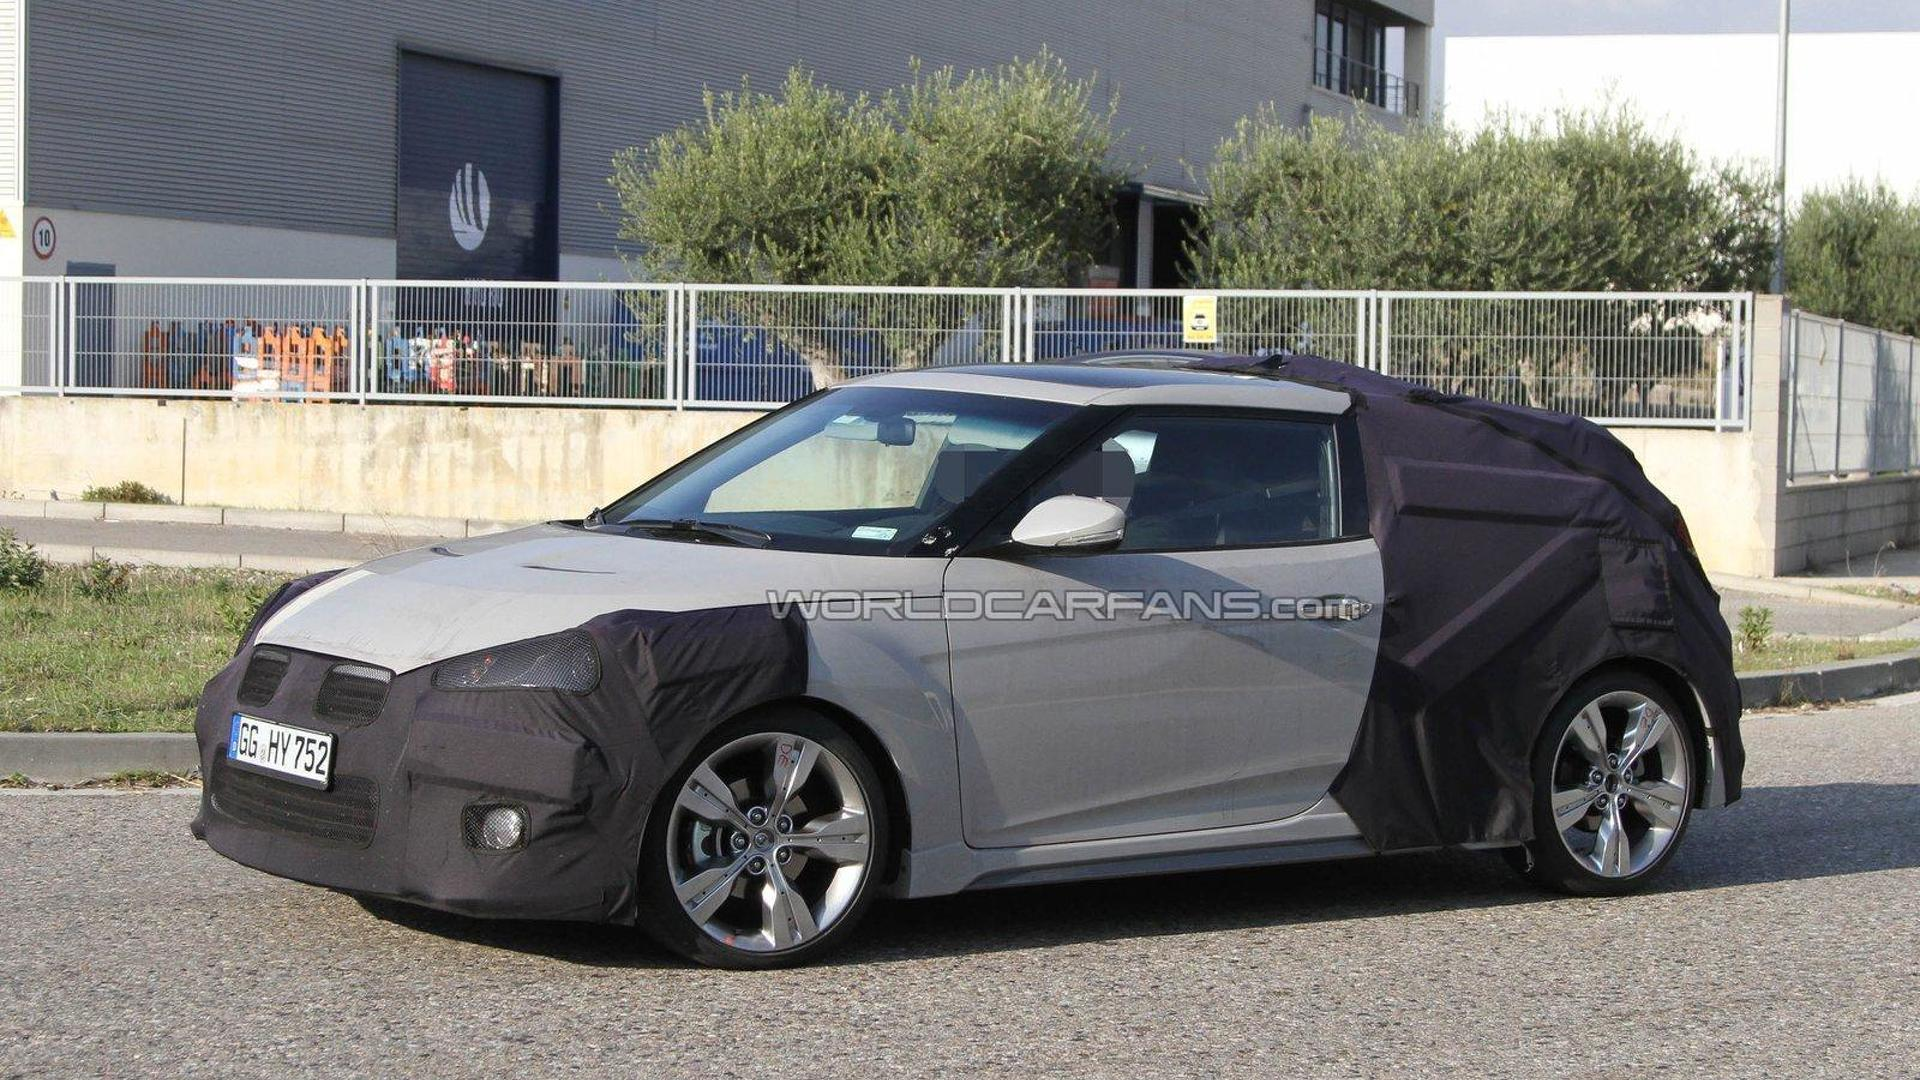 2013 Hyundai Veloster Turbo spied again